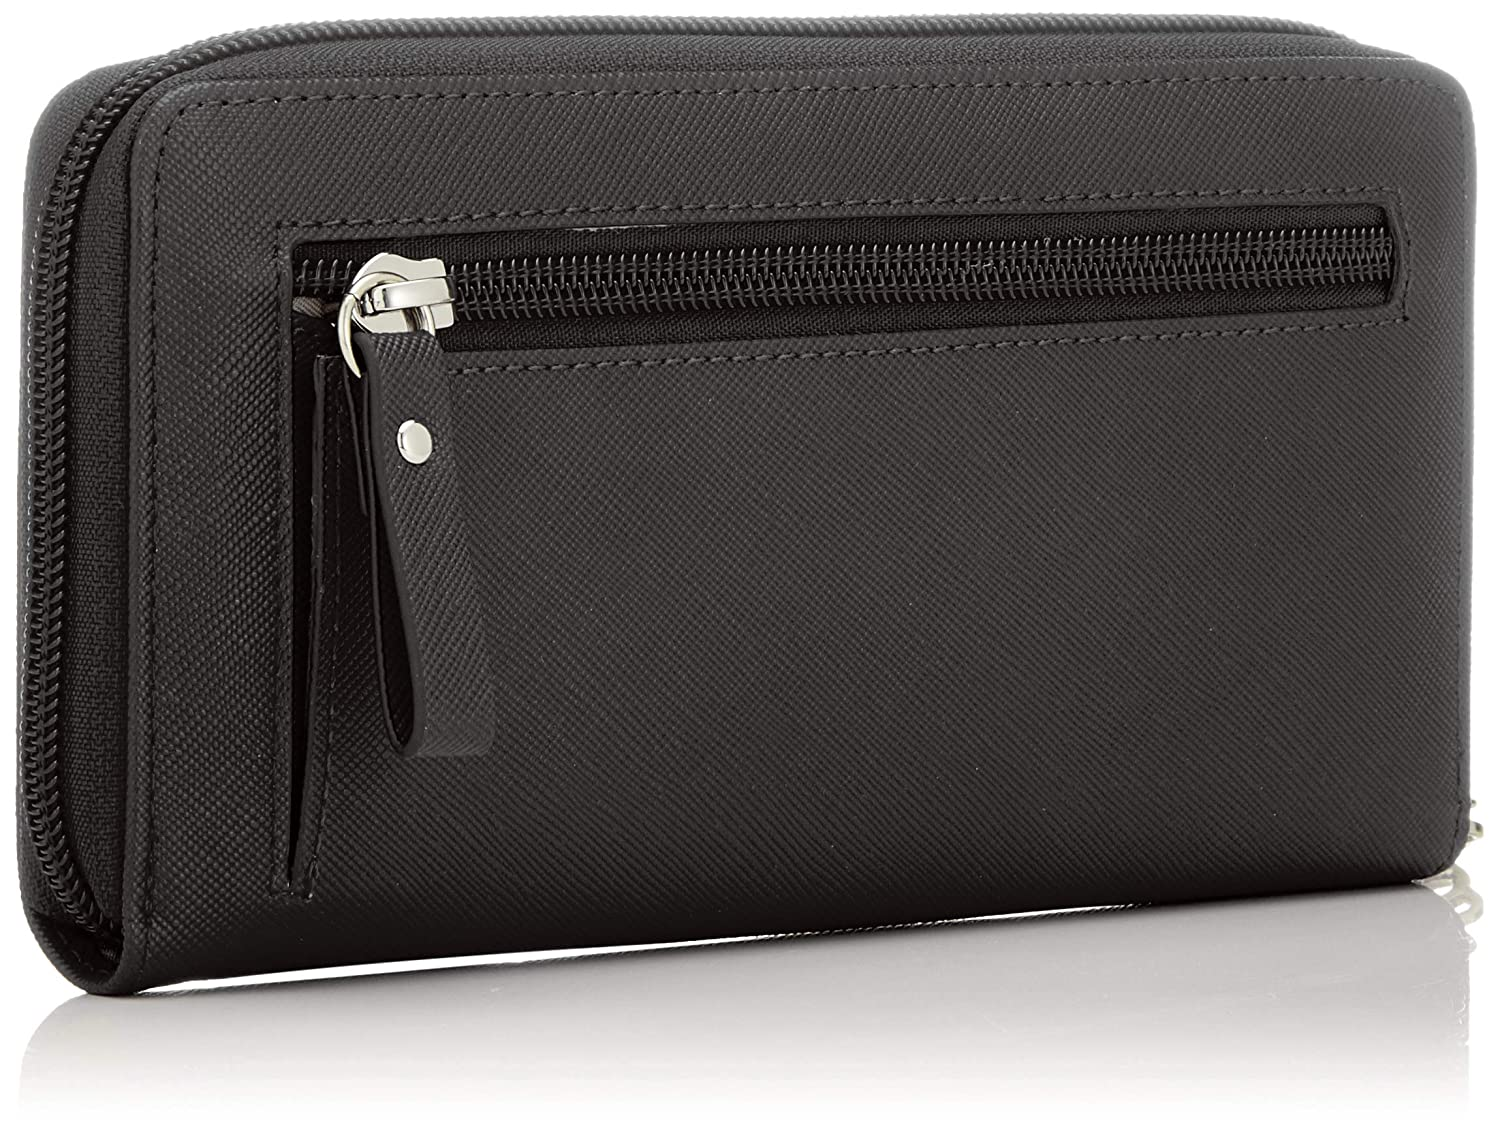 Details zu Tamaris Maxima Big Zip Around Wallet Geldbörse Silver Silber Neu